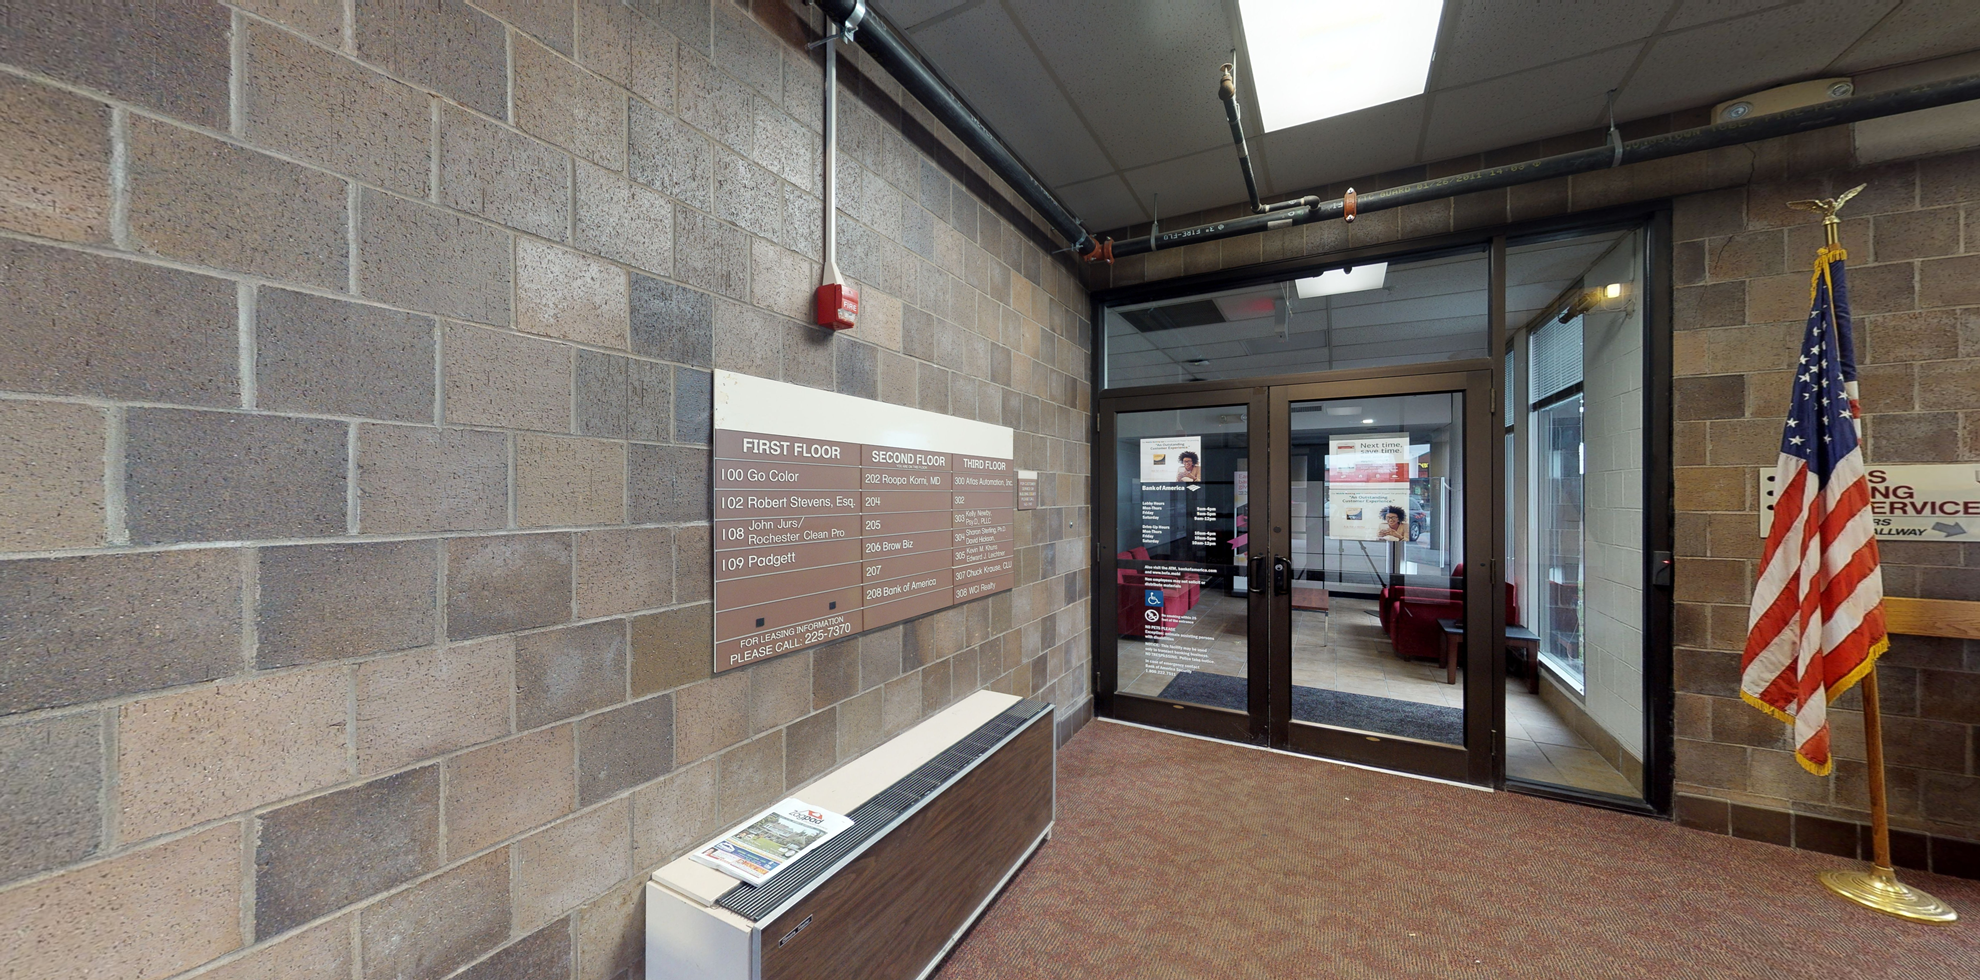 Bank of America financial center with drive-thru ATM and teller | 2450 Ridge Rd W, Rochester, NY 14626